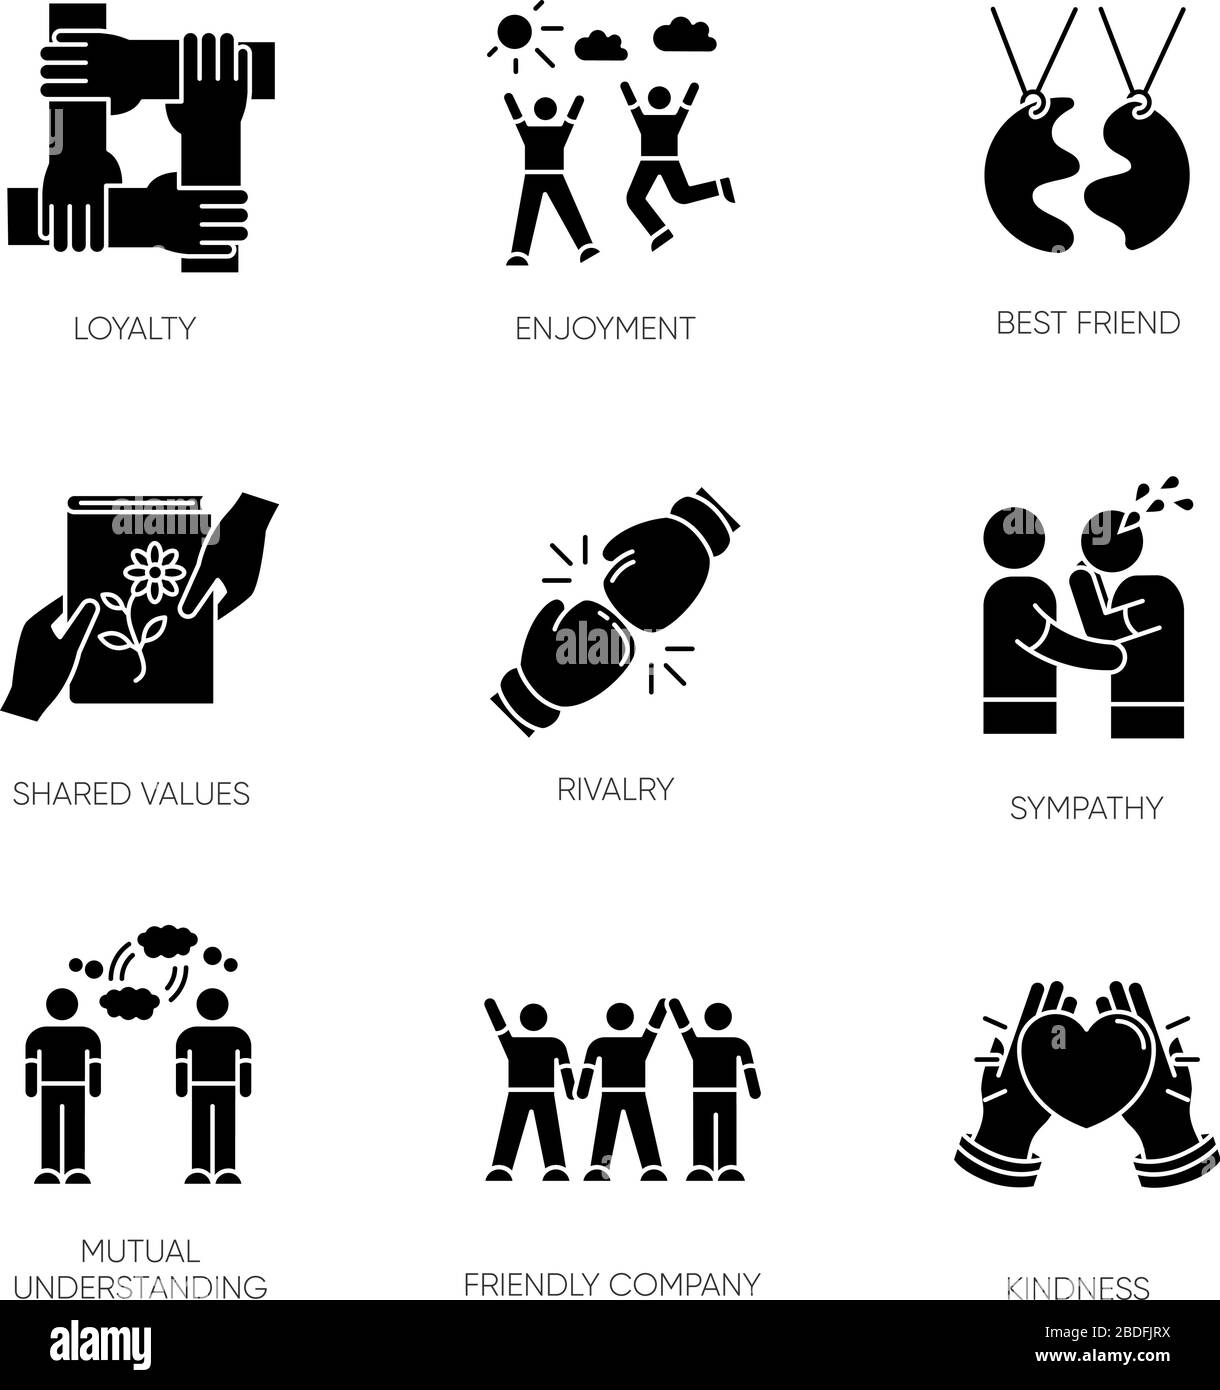 Friendship Black Glyph Icons Set On White Space Emotional Affection Interpersonal Bond Social Relationship Silhouette Symbols Togetherness And Stock Vector Image Art Alamy